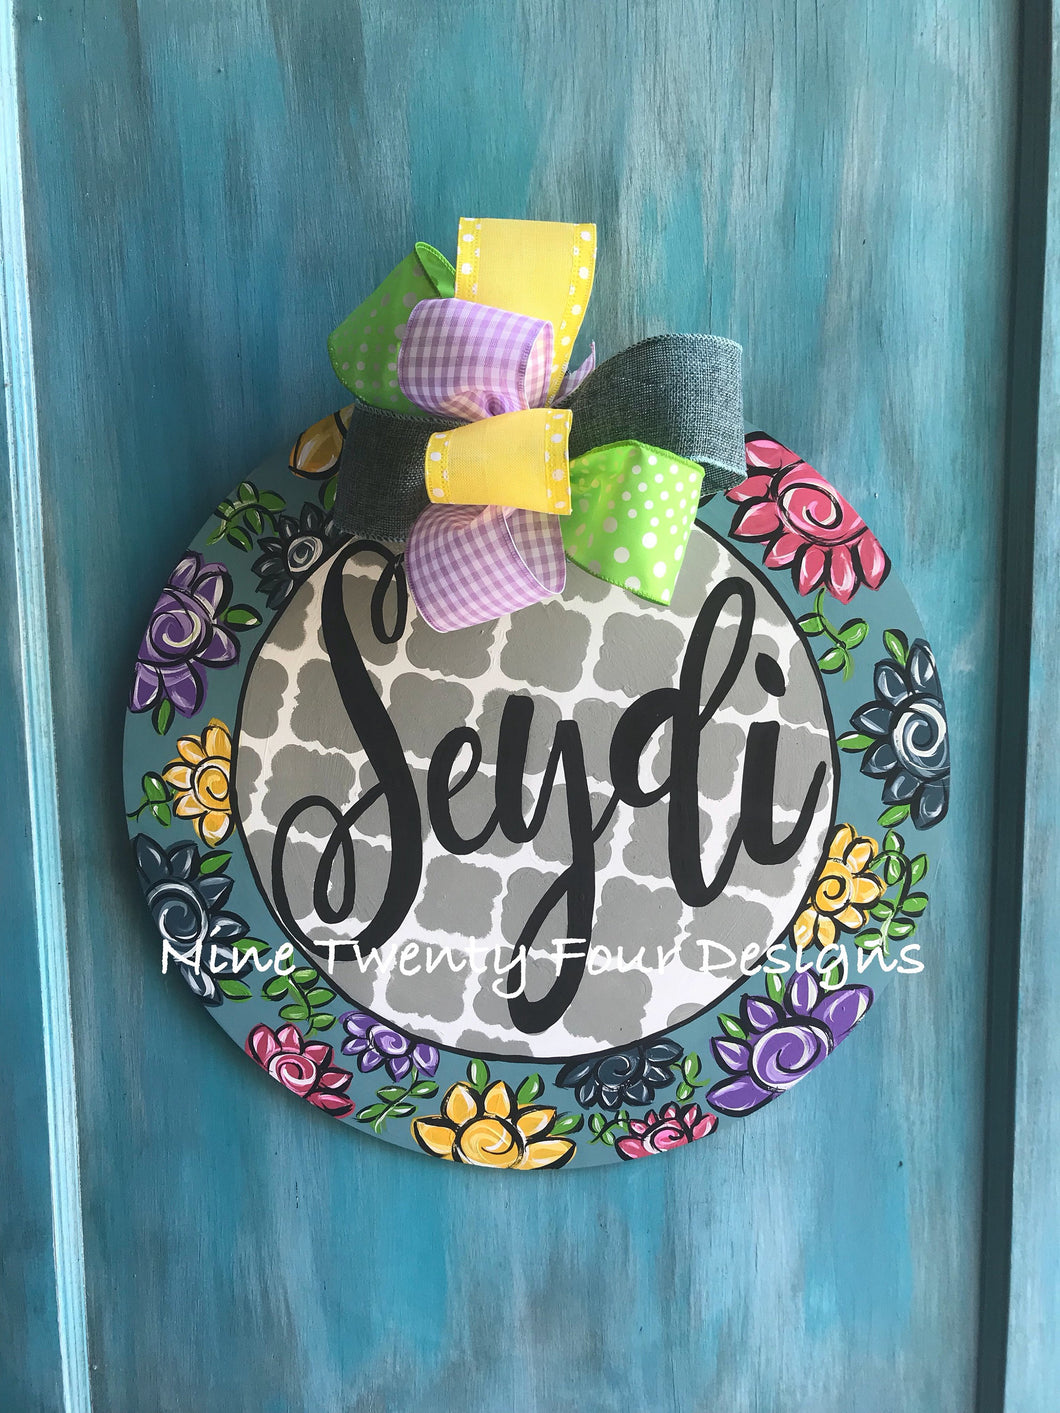 Door hanger, dorm door hanger, monogram door hanger, dorm decor, door dcoration, door decor, hand painted door hanger, girls door hanger